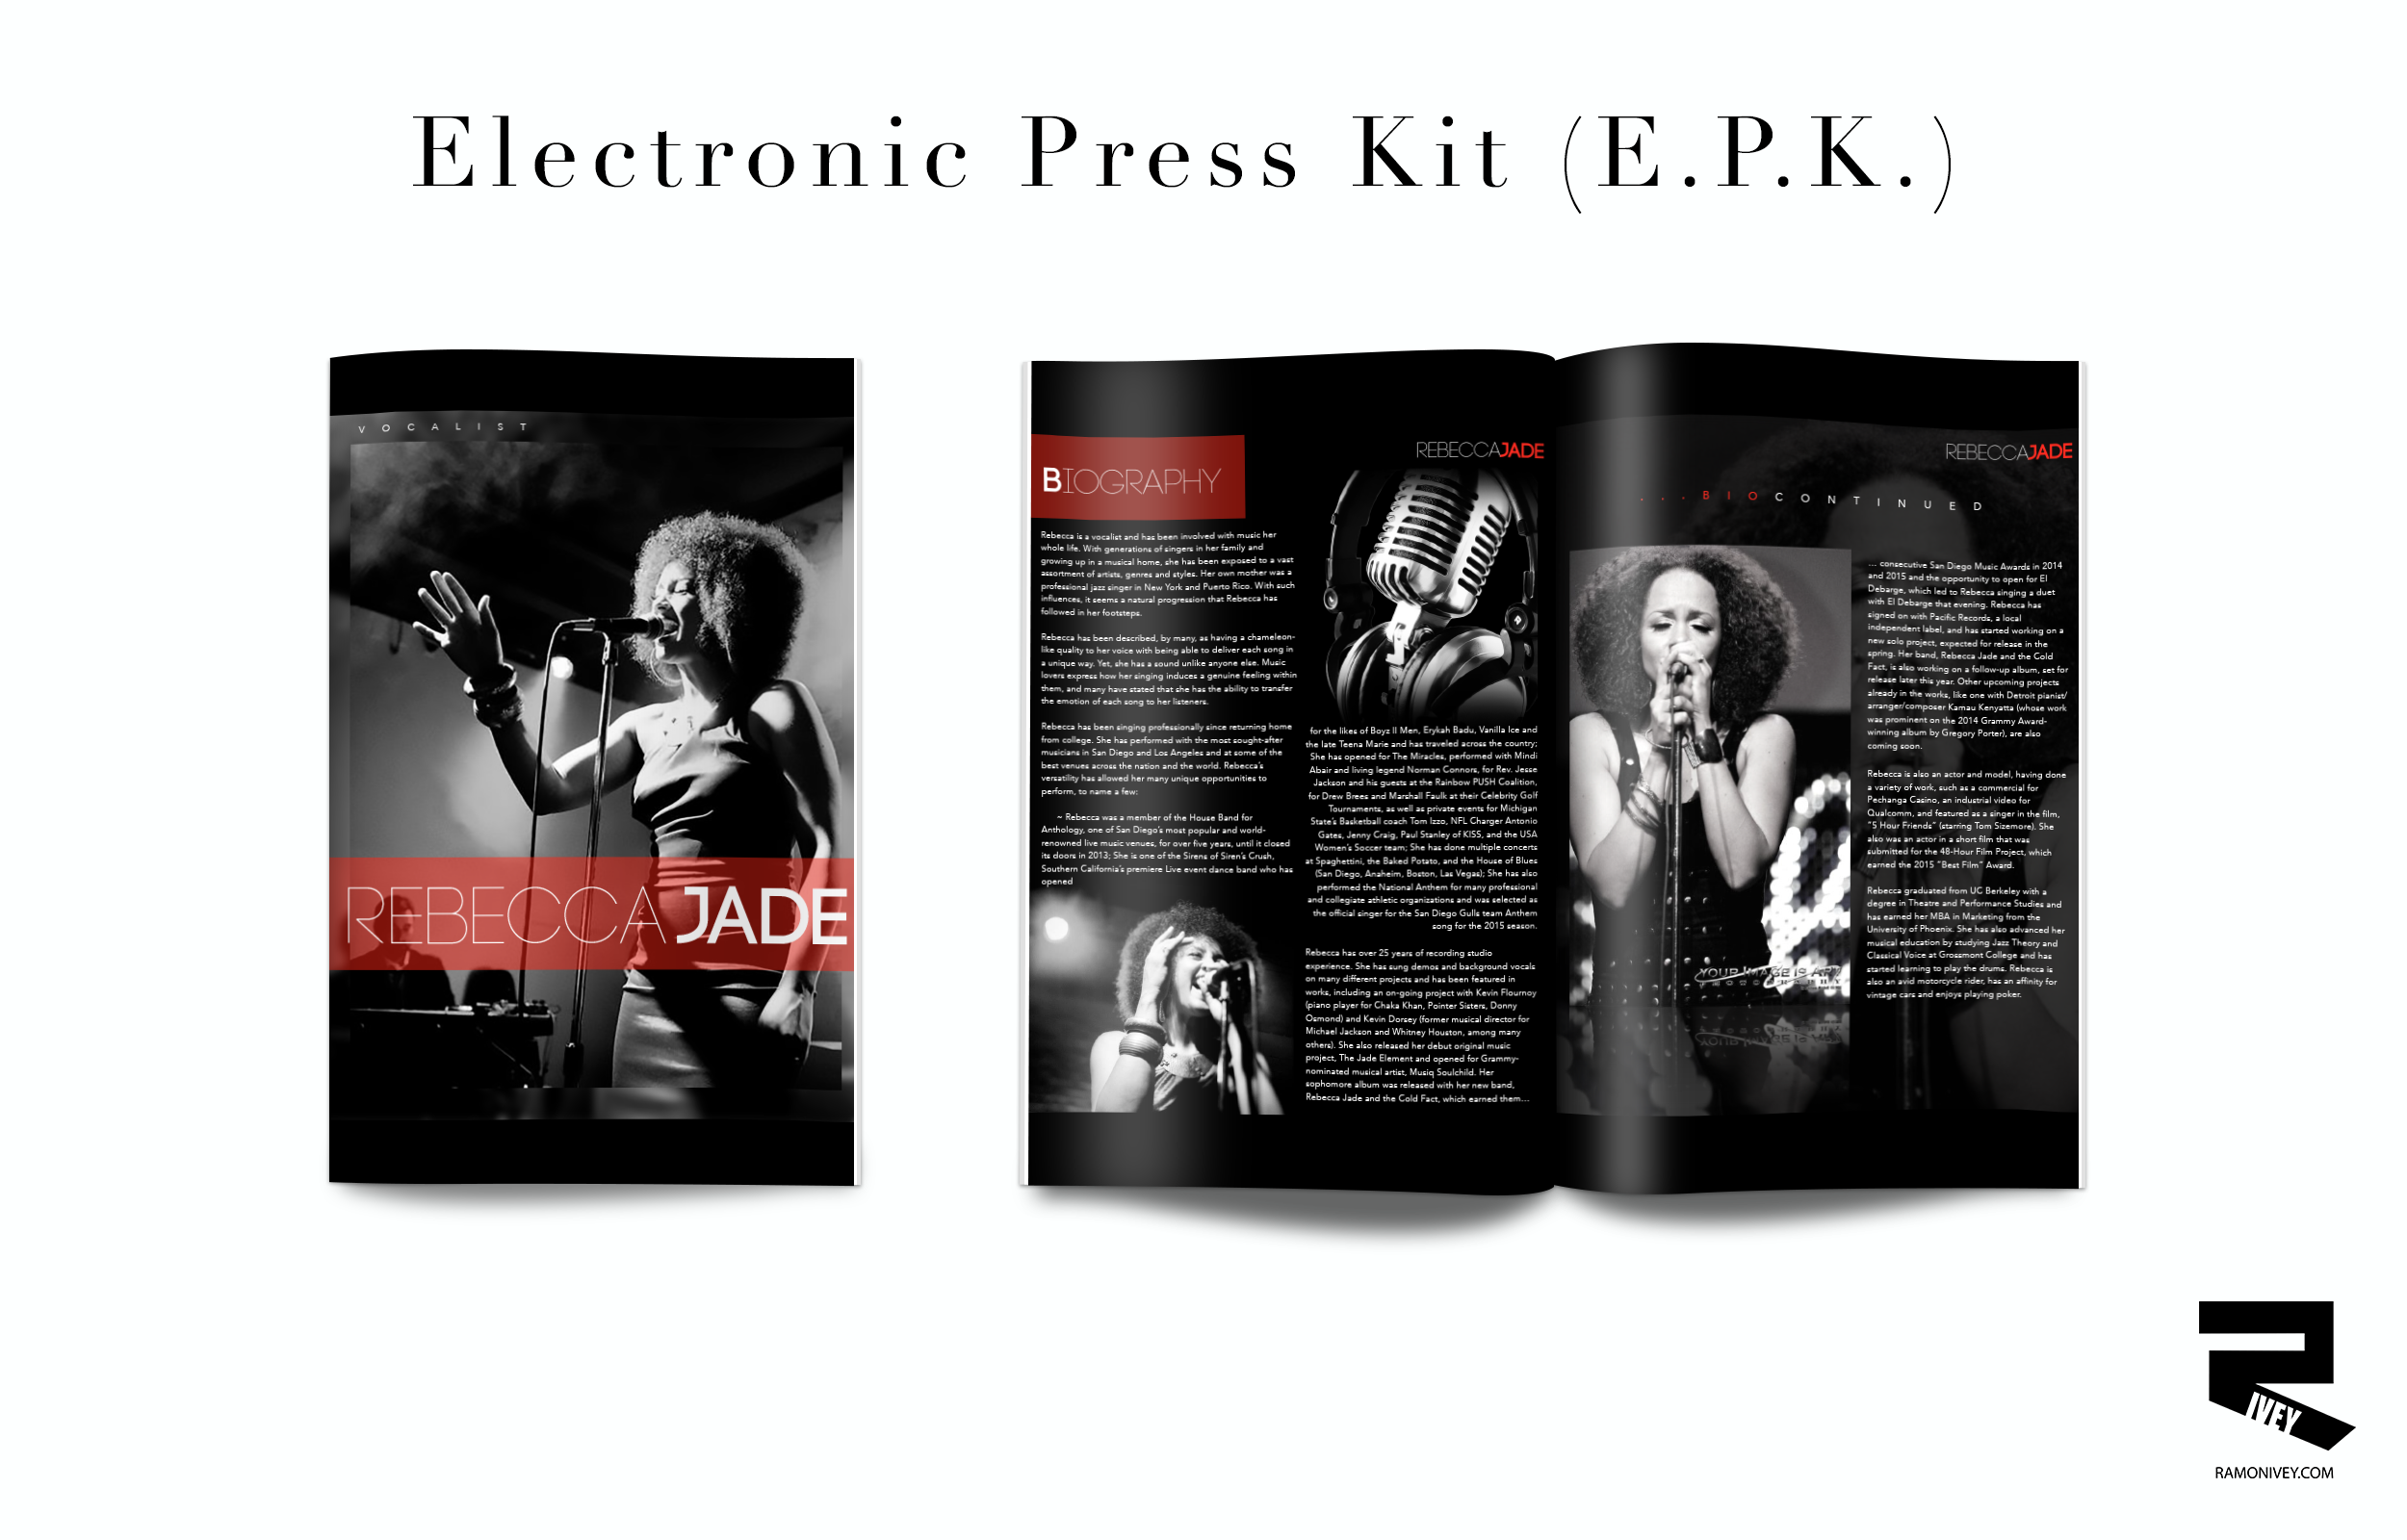 ELECTRONIC PRESS KITS